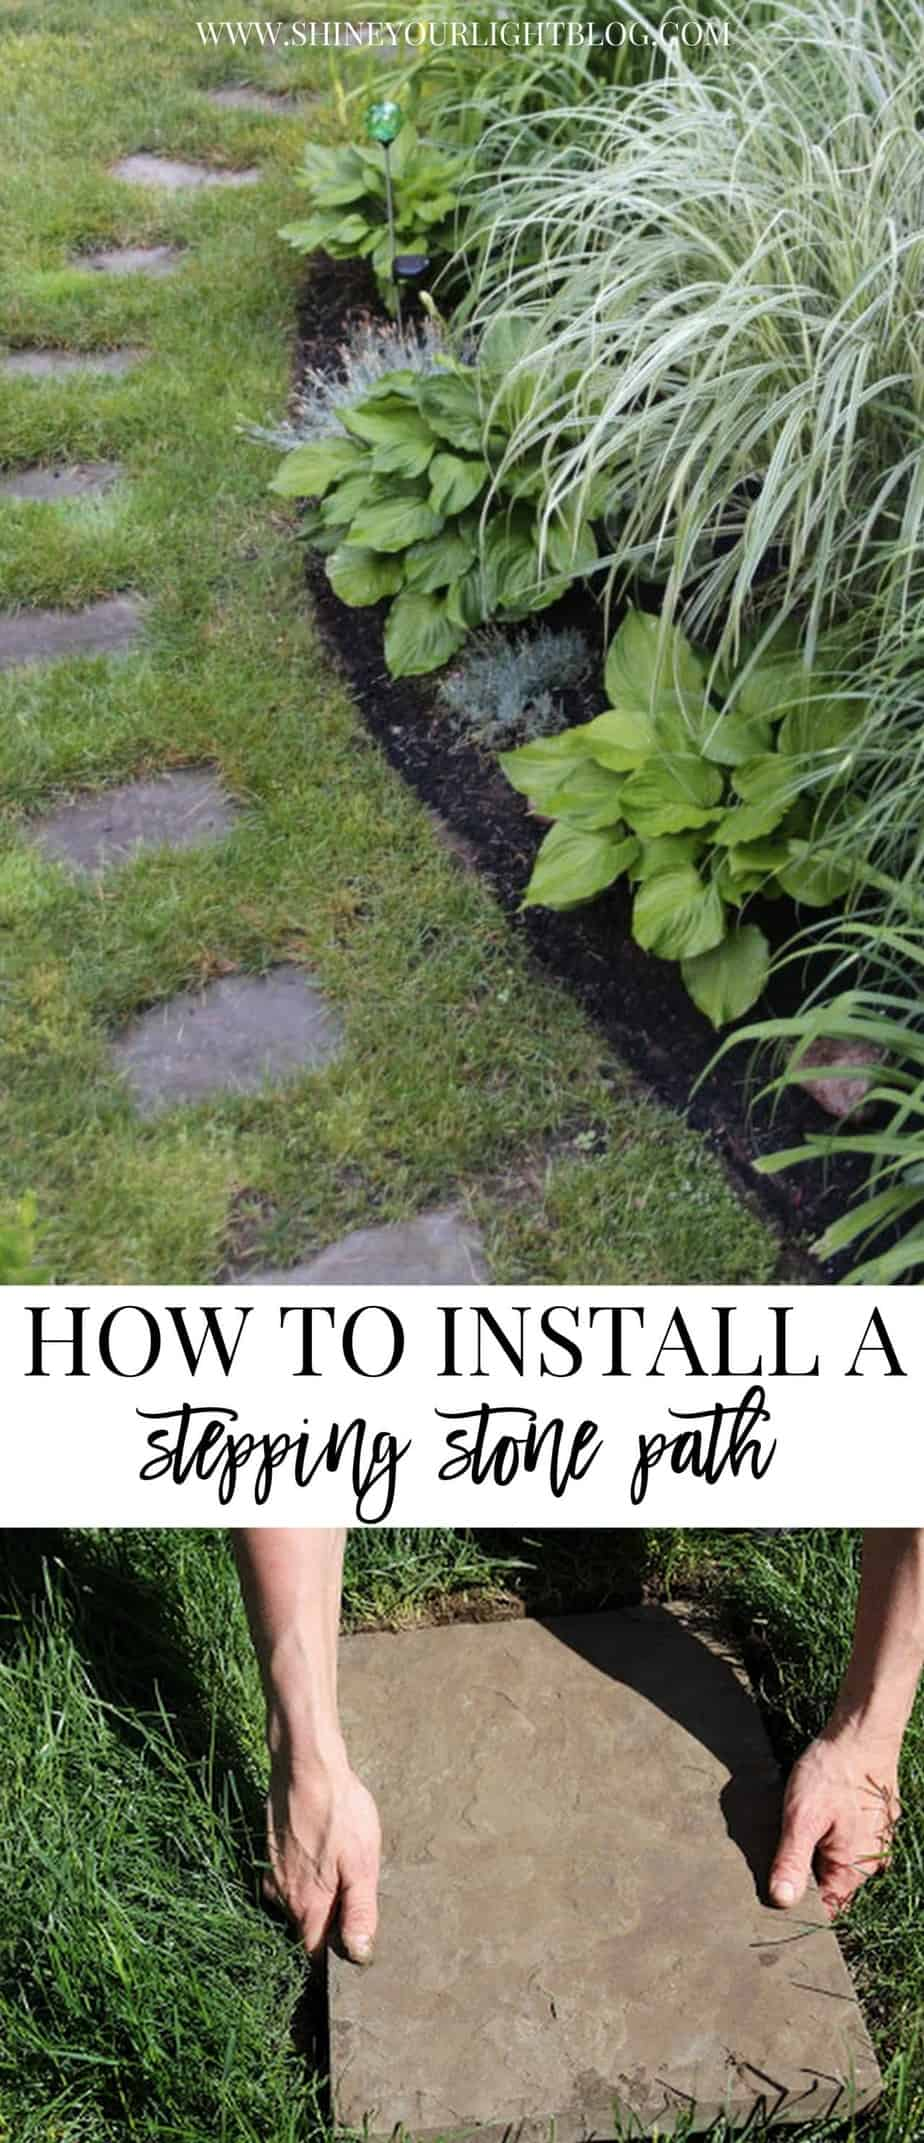 Setting A Stepping Stone Path Shine Your Light